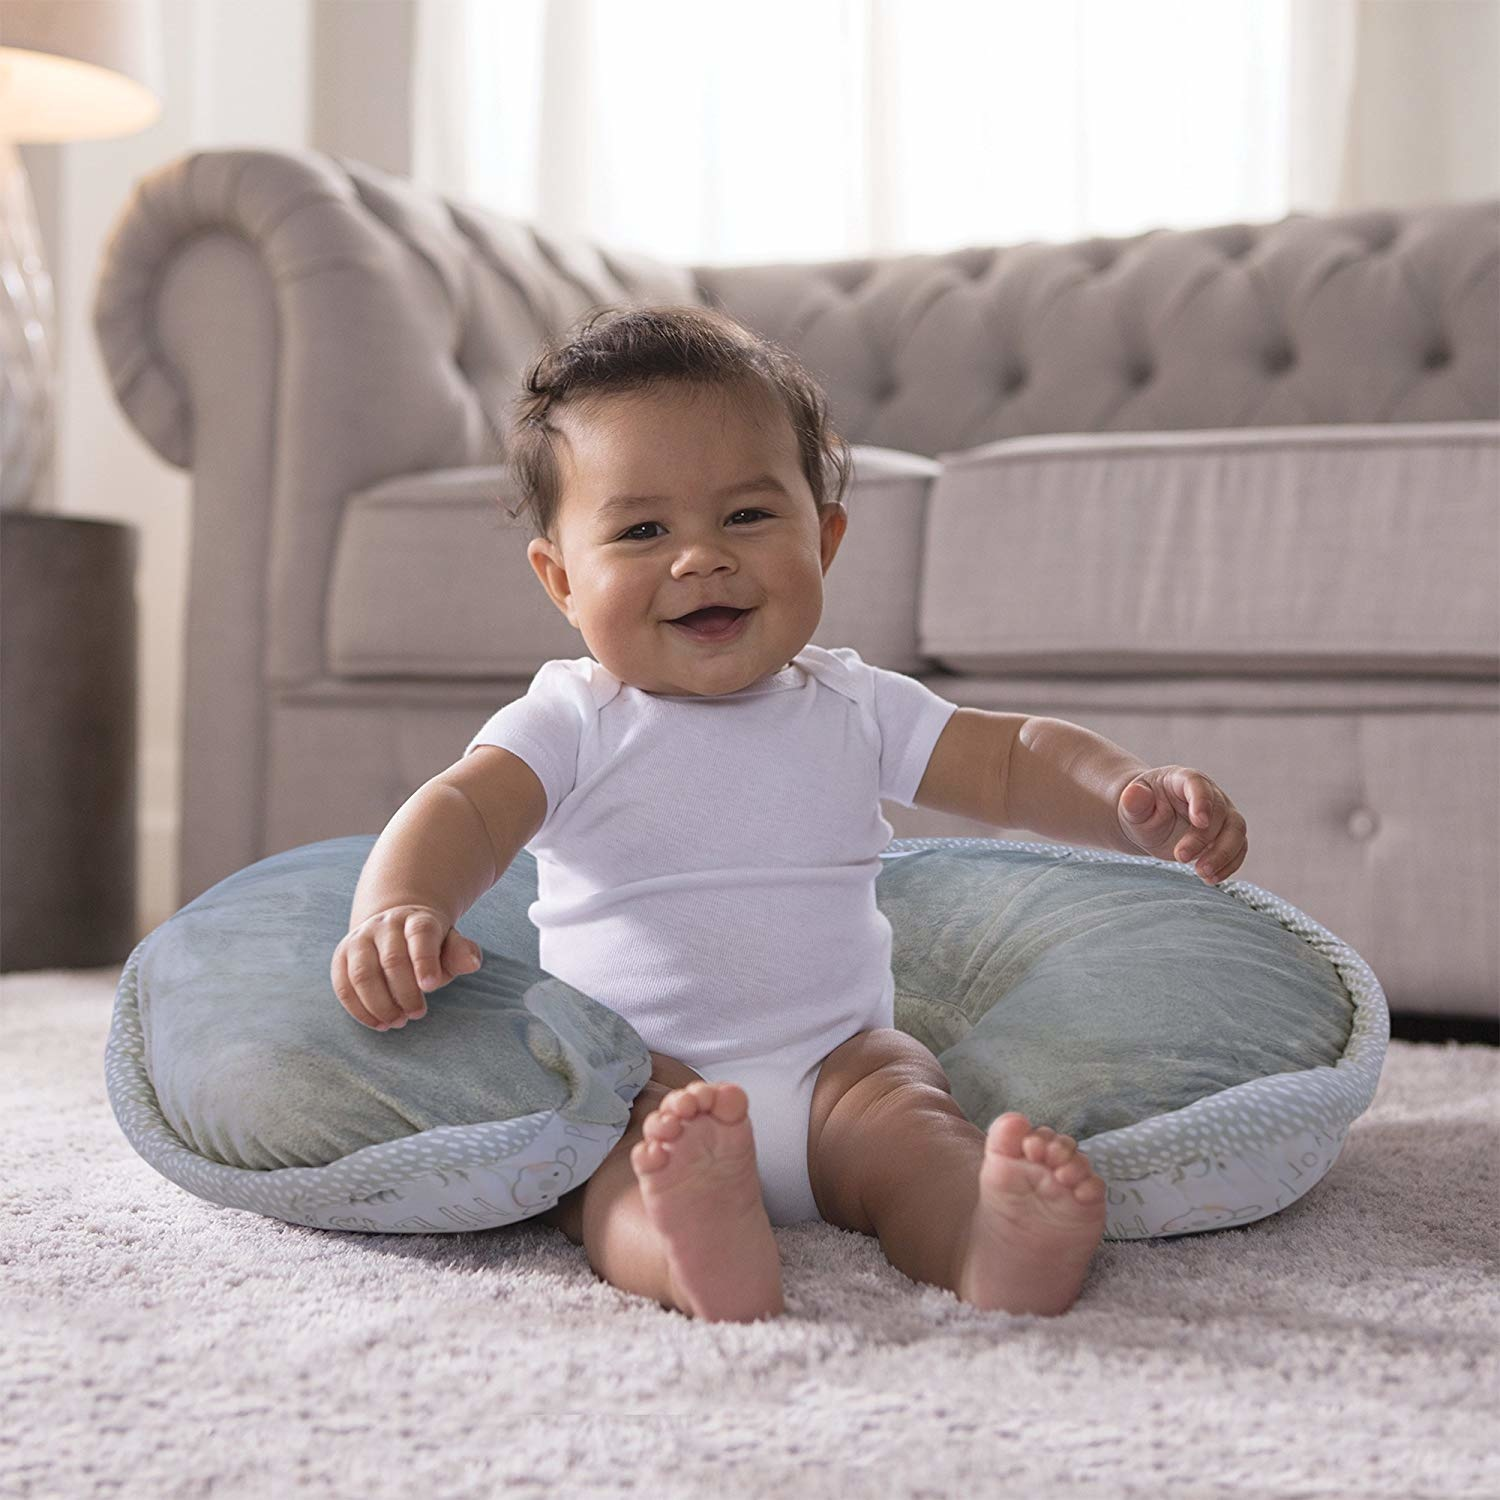 boppy boppy luxe nursing and infant support pillow in store curbside exclusive